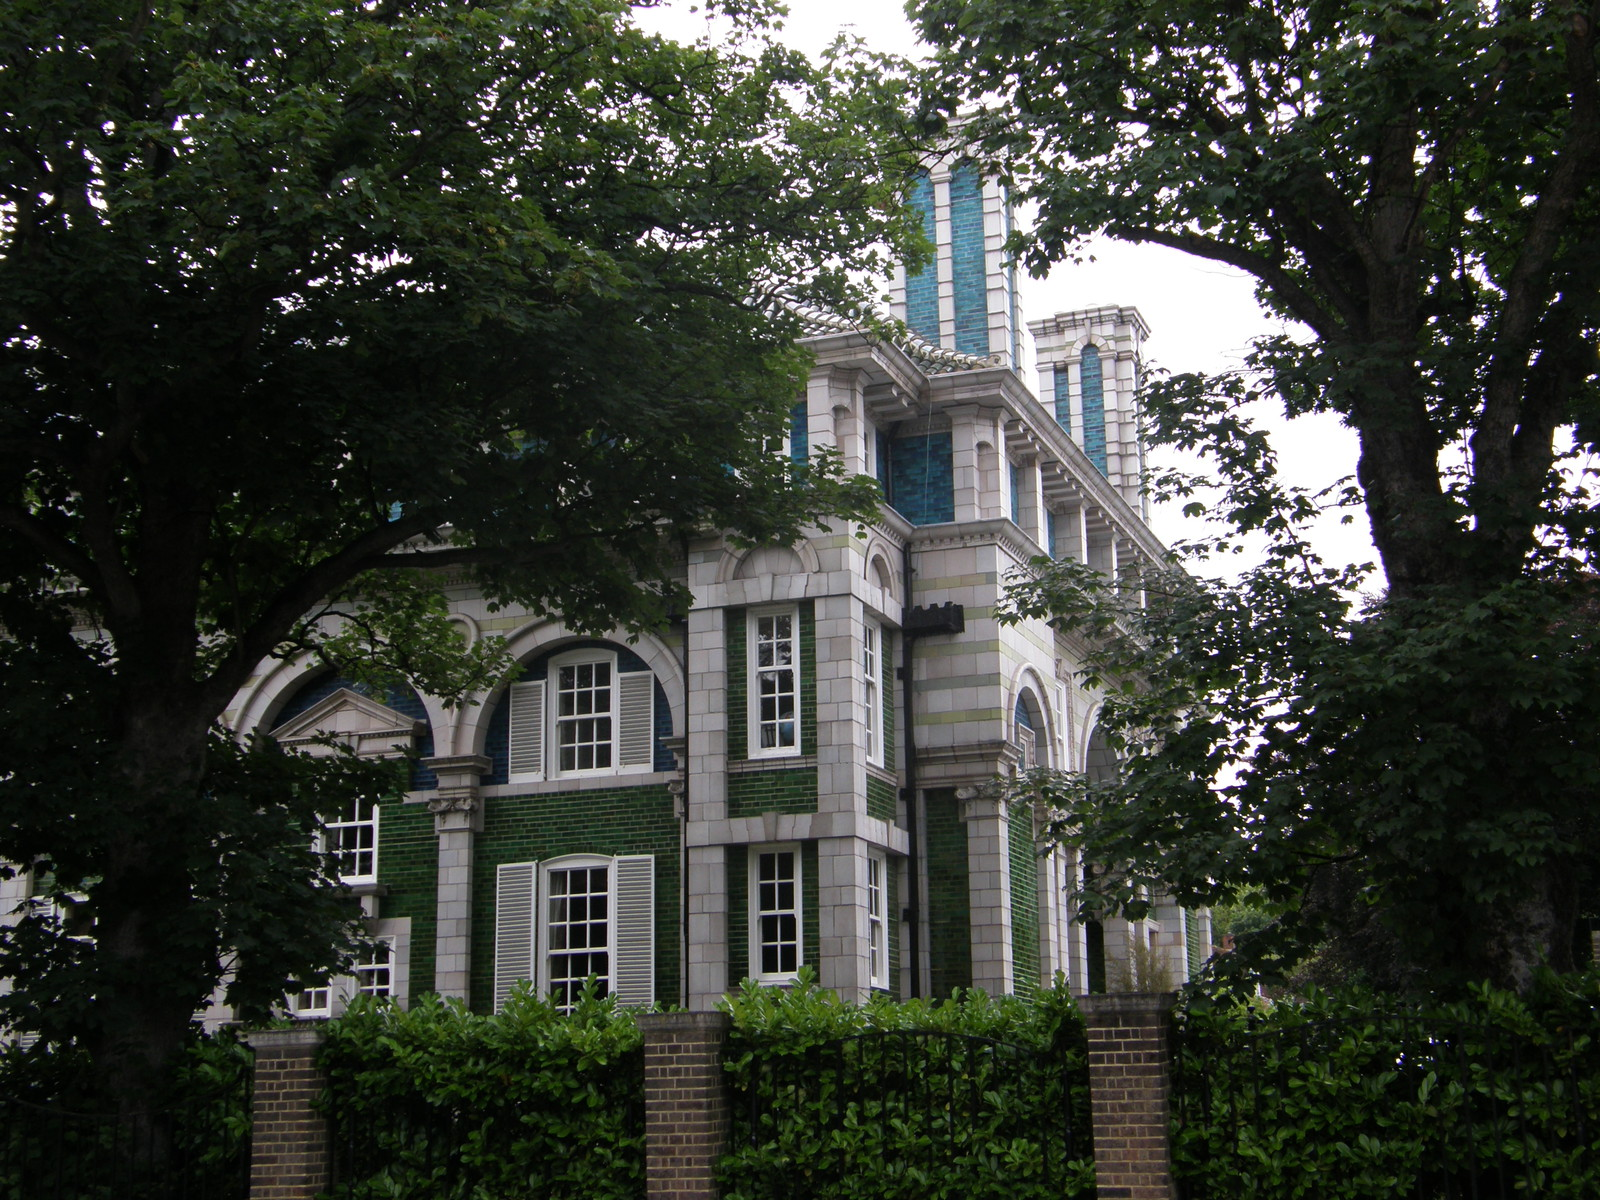 The Peacock House